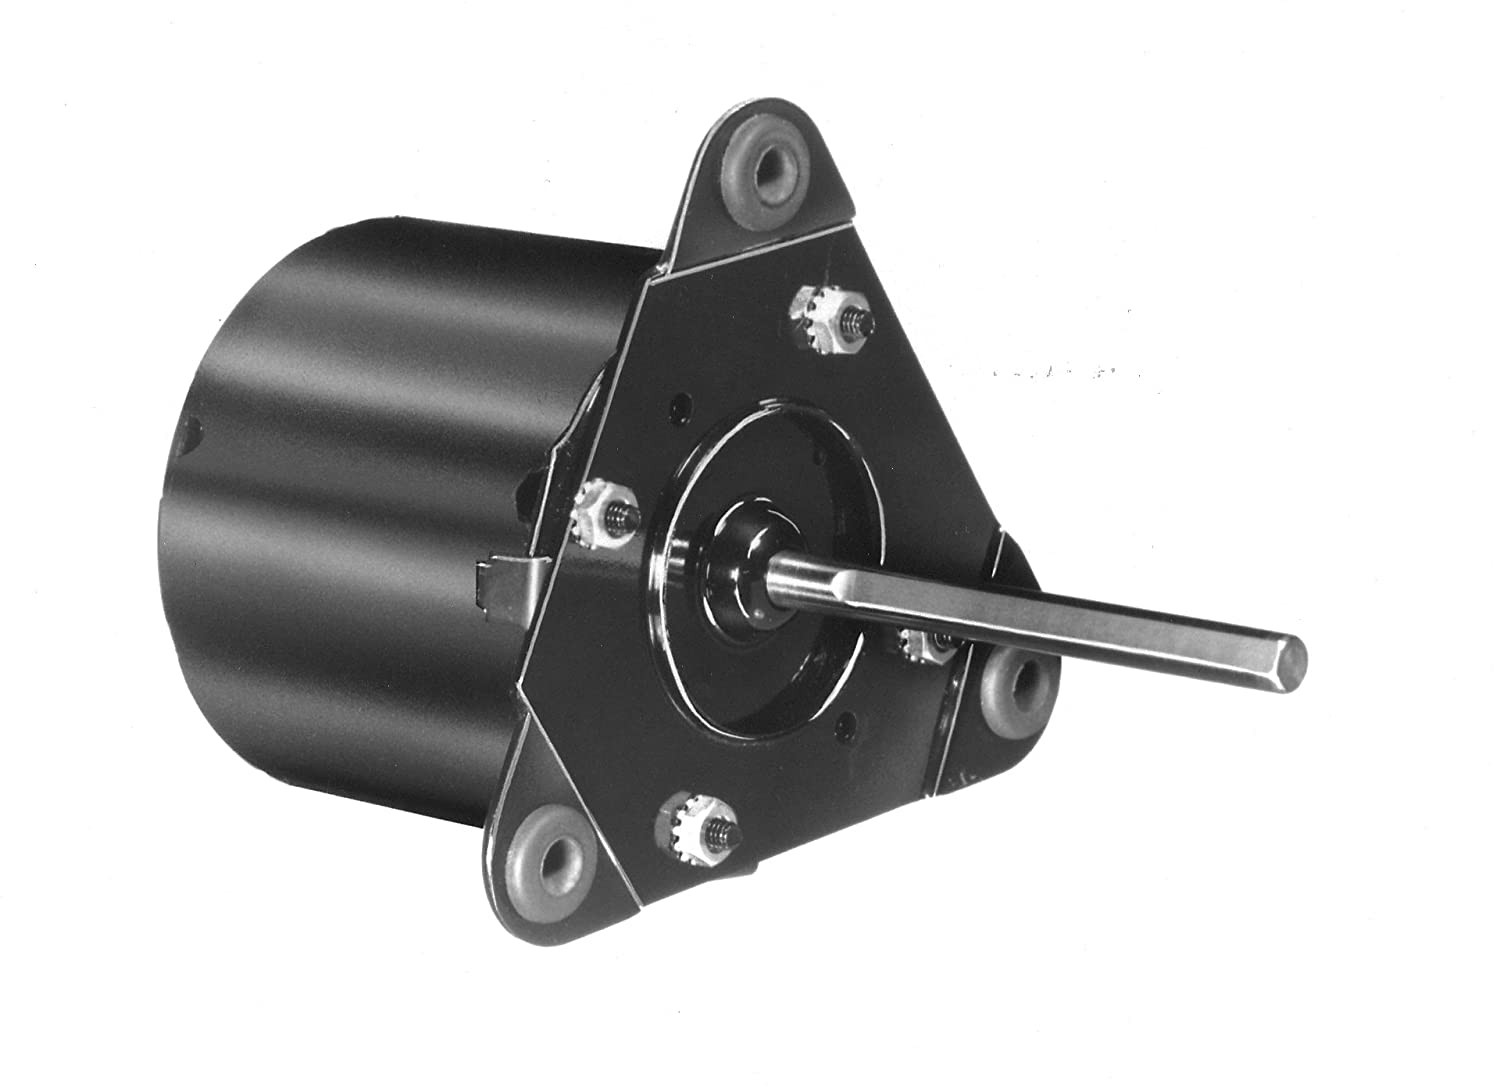 Fasco D1118 3.3-Inch Frame Open Ventilated Shaded Pole General Purpose Motor with  Ball Bearing, 1/30HP, 1500RPM, 240V, 60Hz, 0.6 Amps